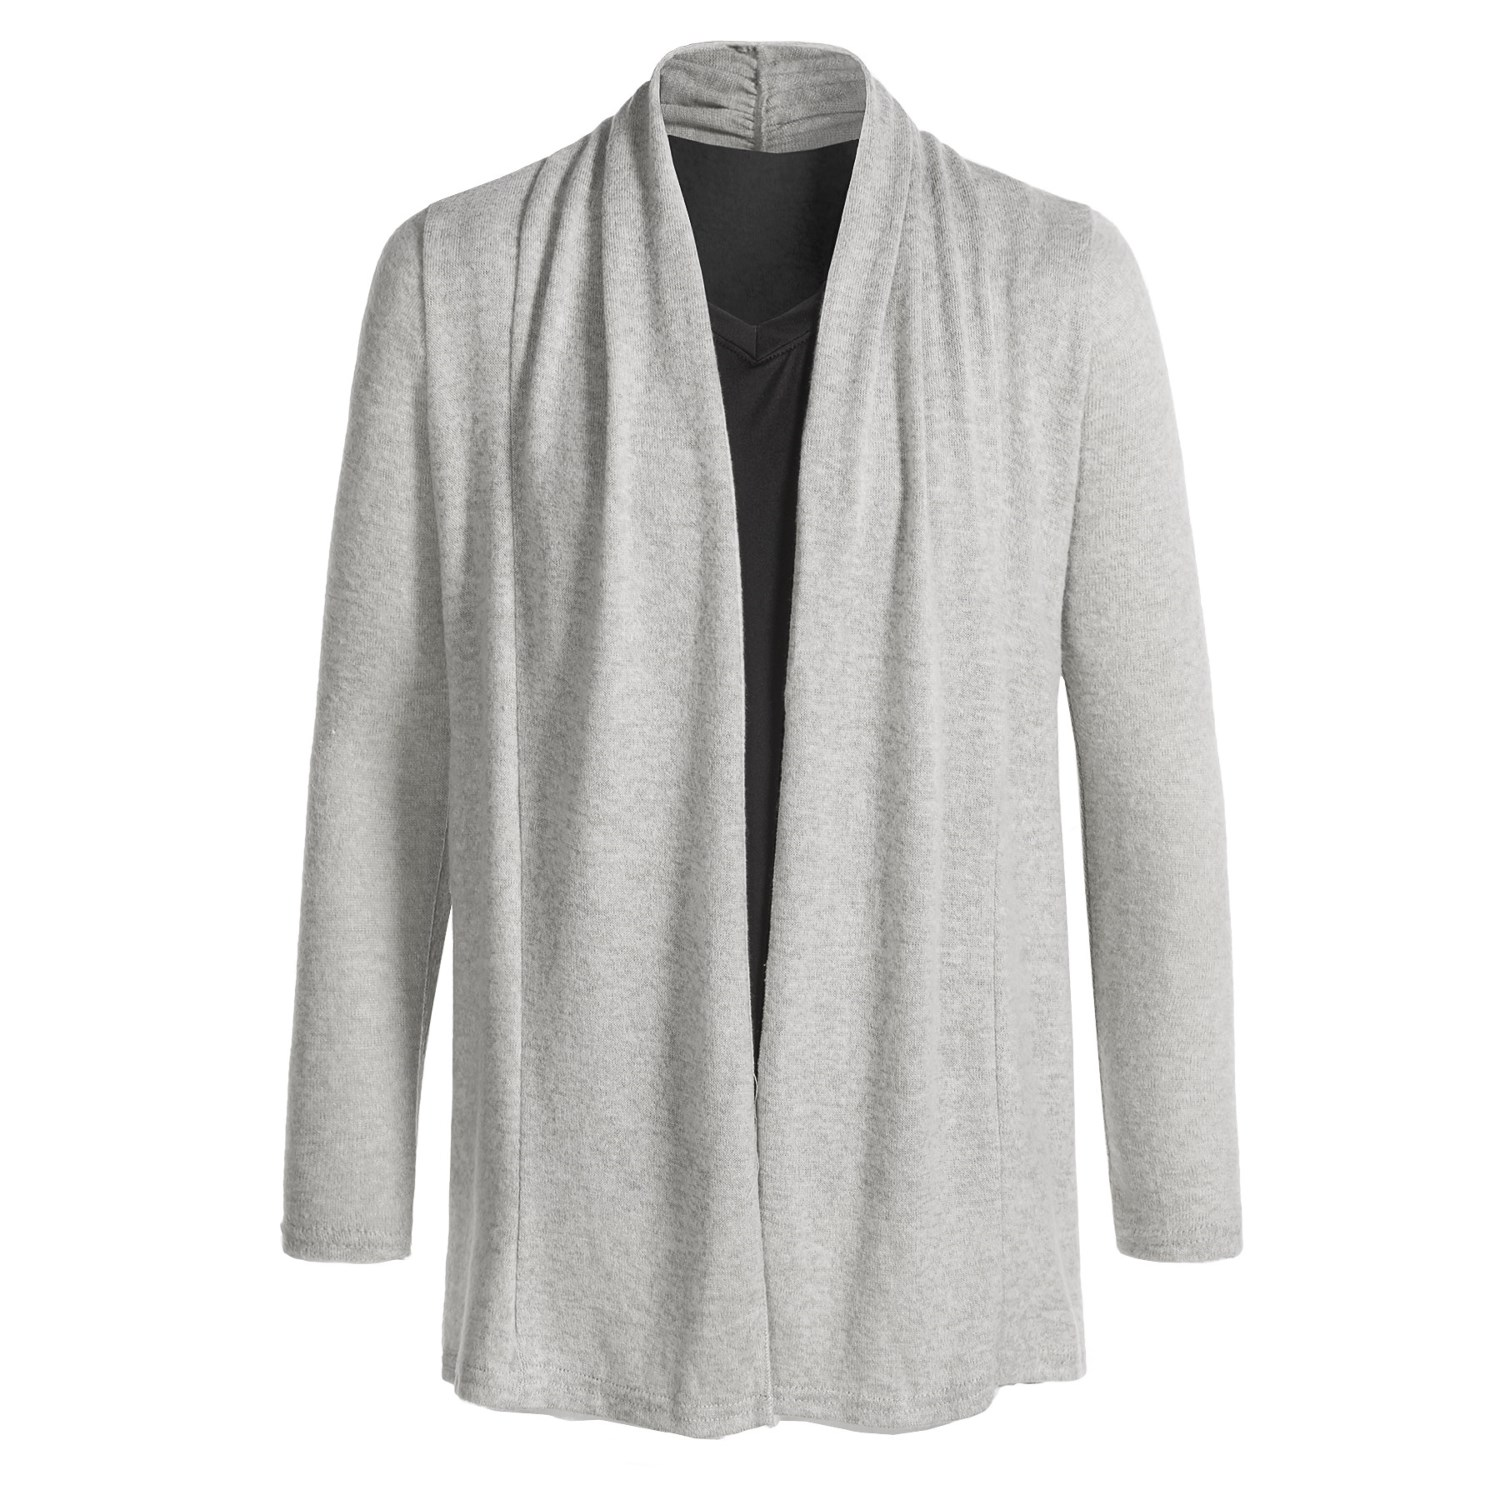 Poof Open Cardigan Sweater (For Girls) - Save 44%